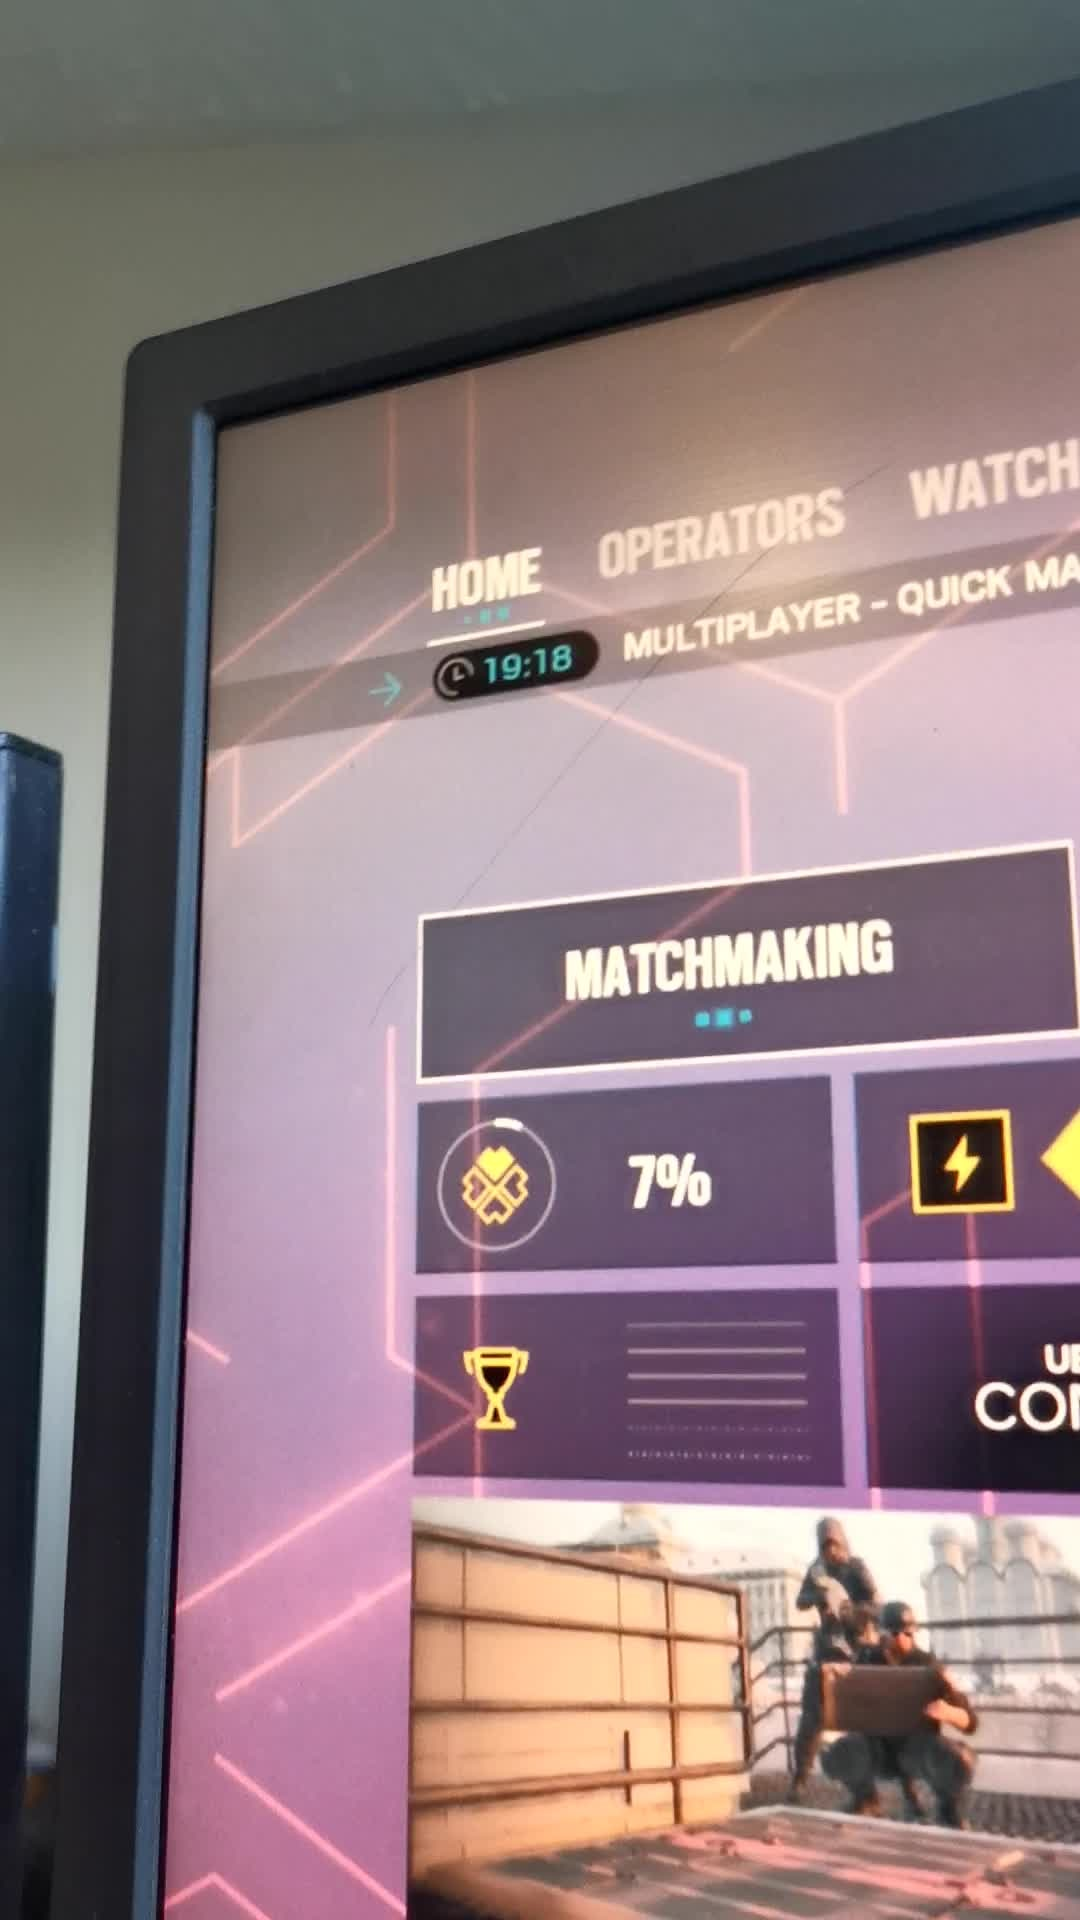 Rainbow Six: General - Matchmaking in the test servers tho  video cover image 0